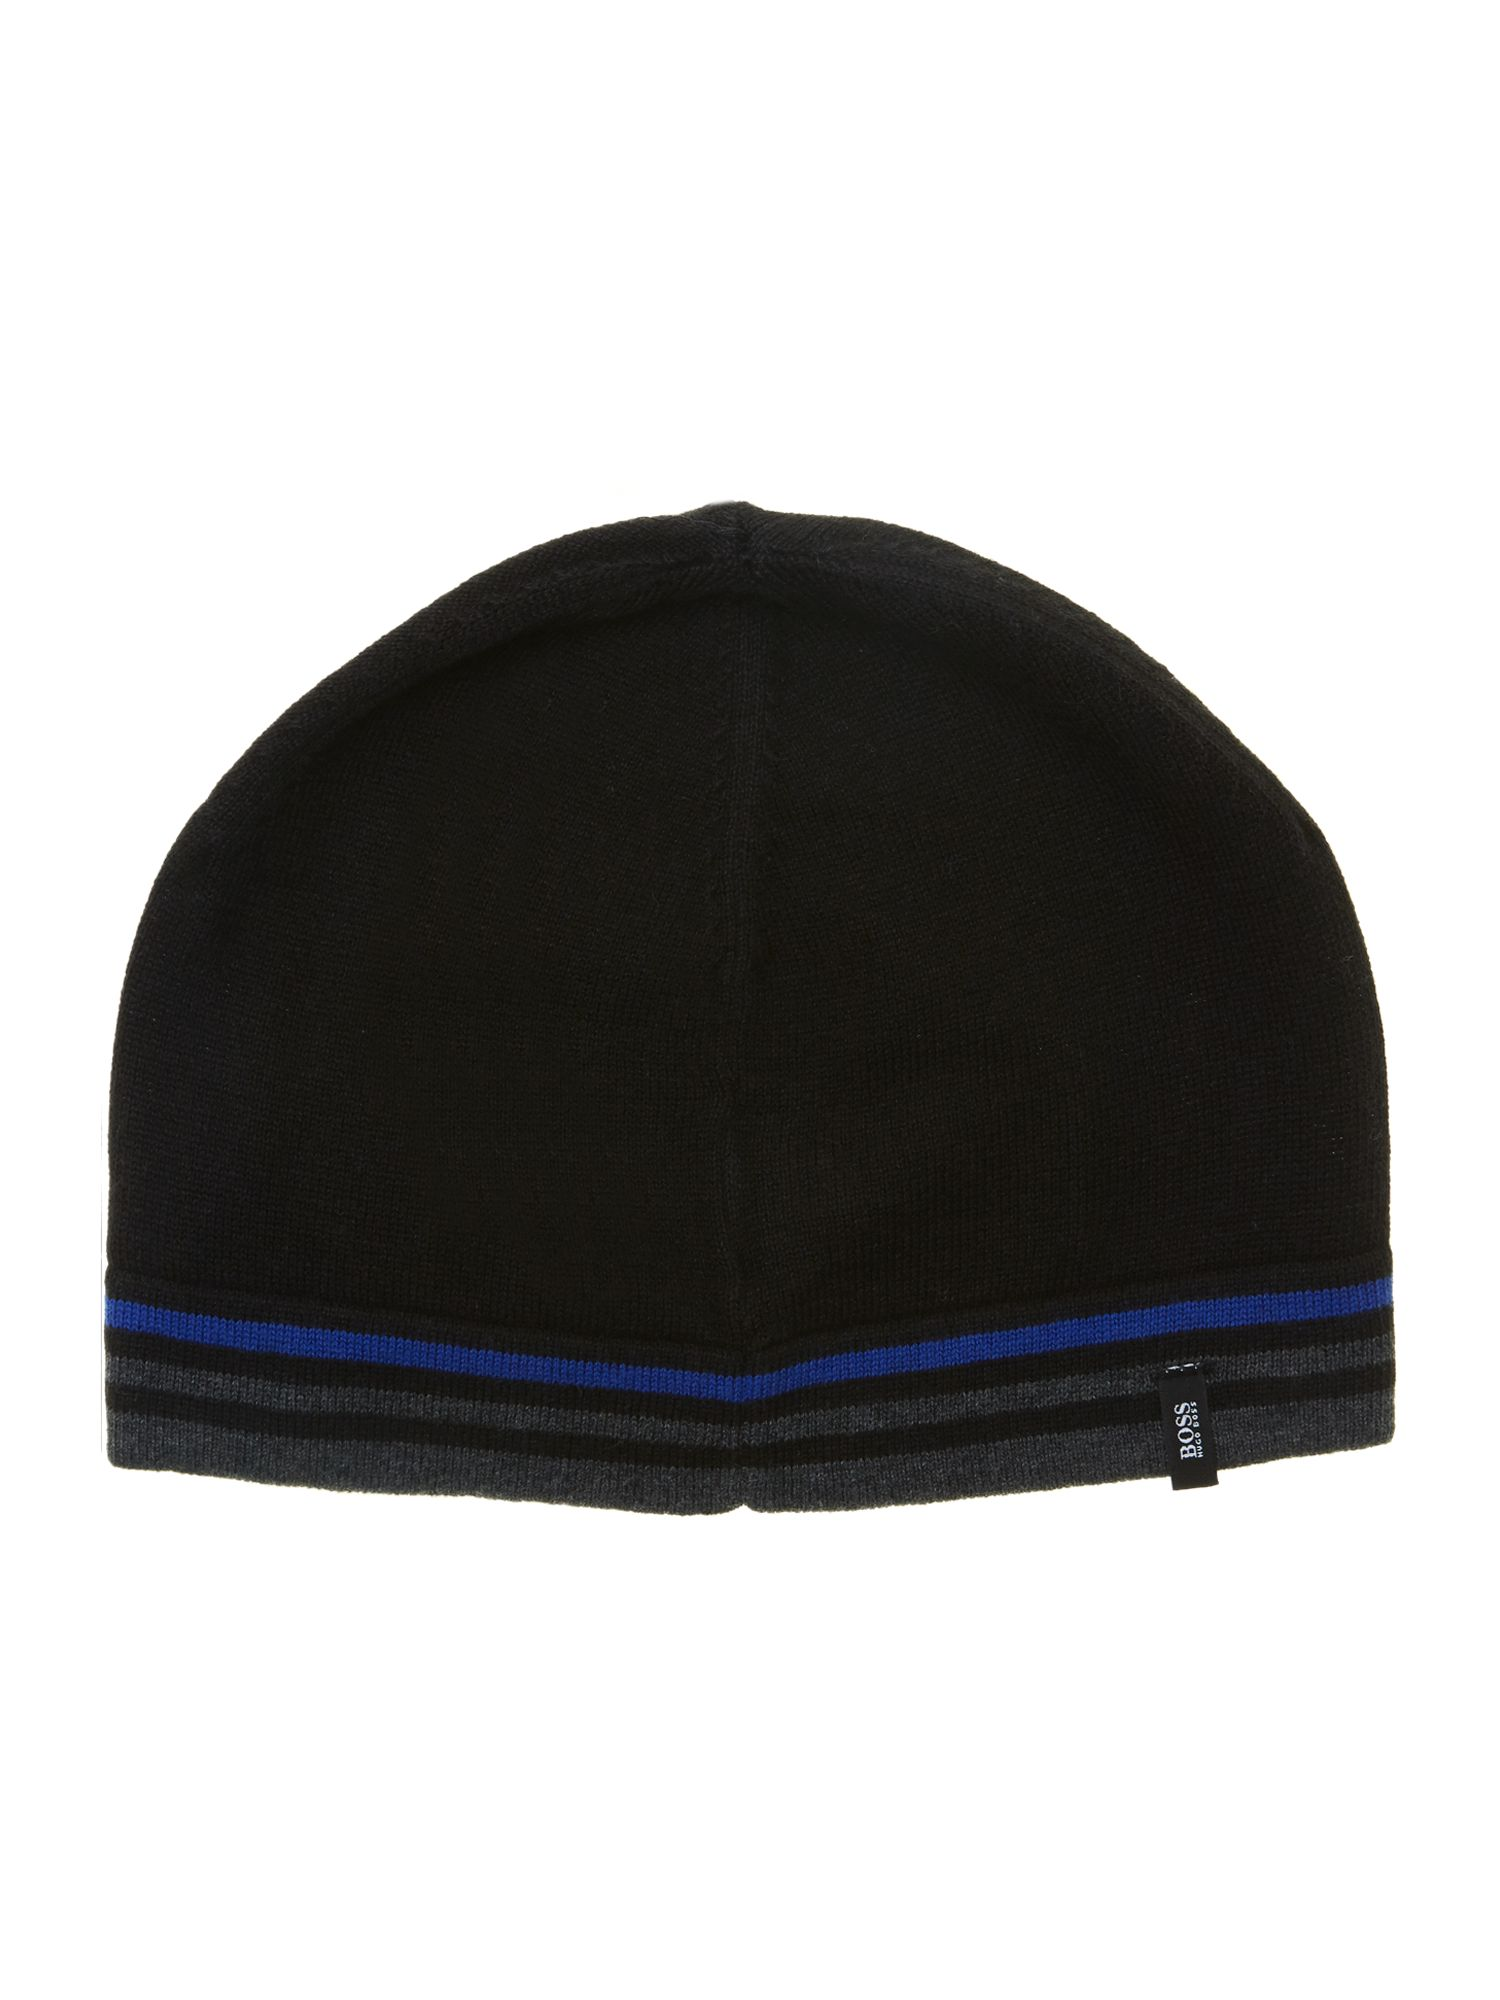 Older boy`s cotton knitted beanie